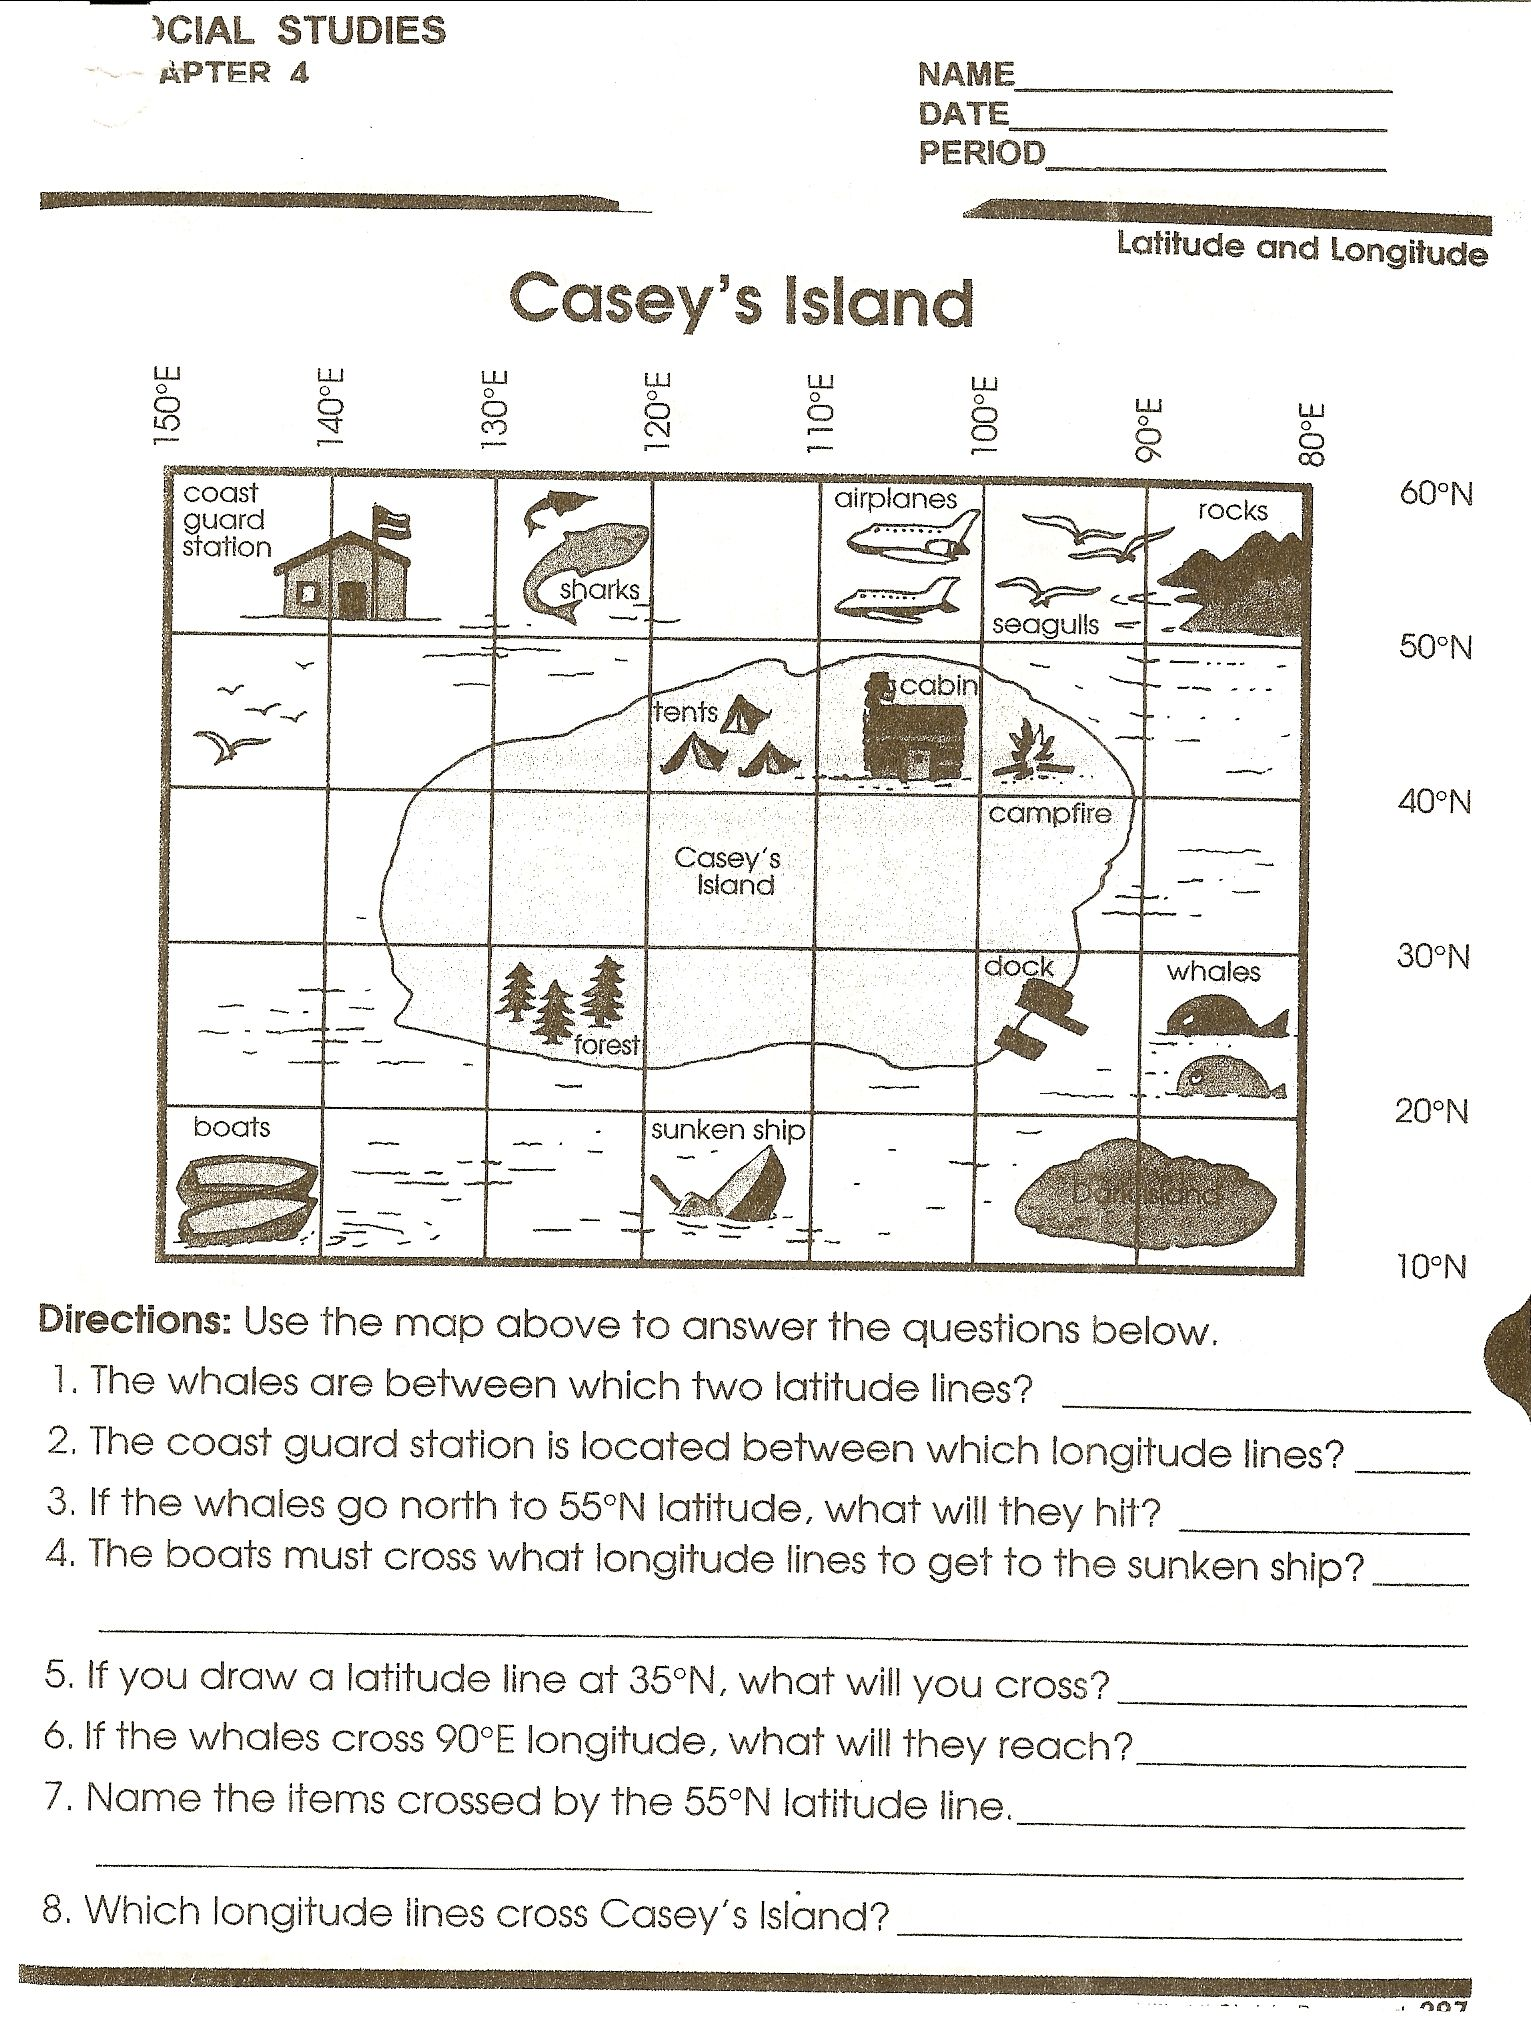 caseys island map 1 531 2 028 pixels school stuff for b pinterest geography. Black Bedroom Furniture Sets. Home Design Ideas